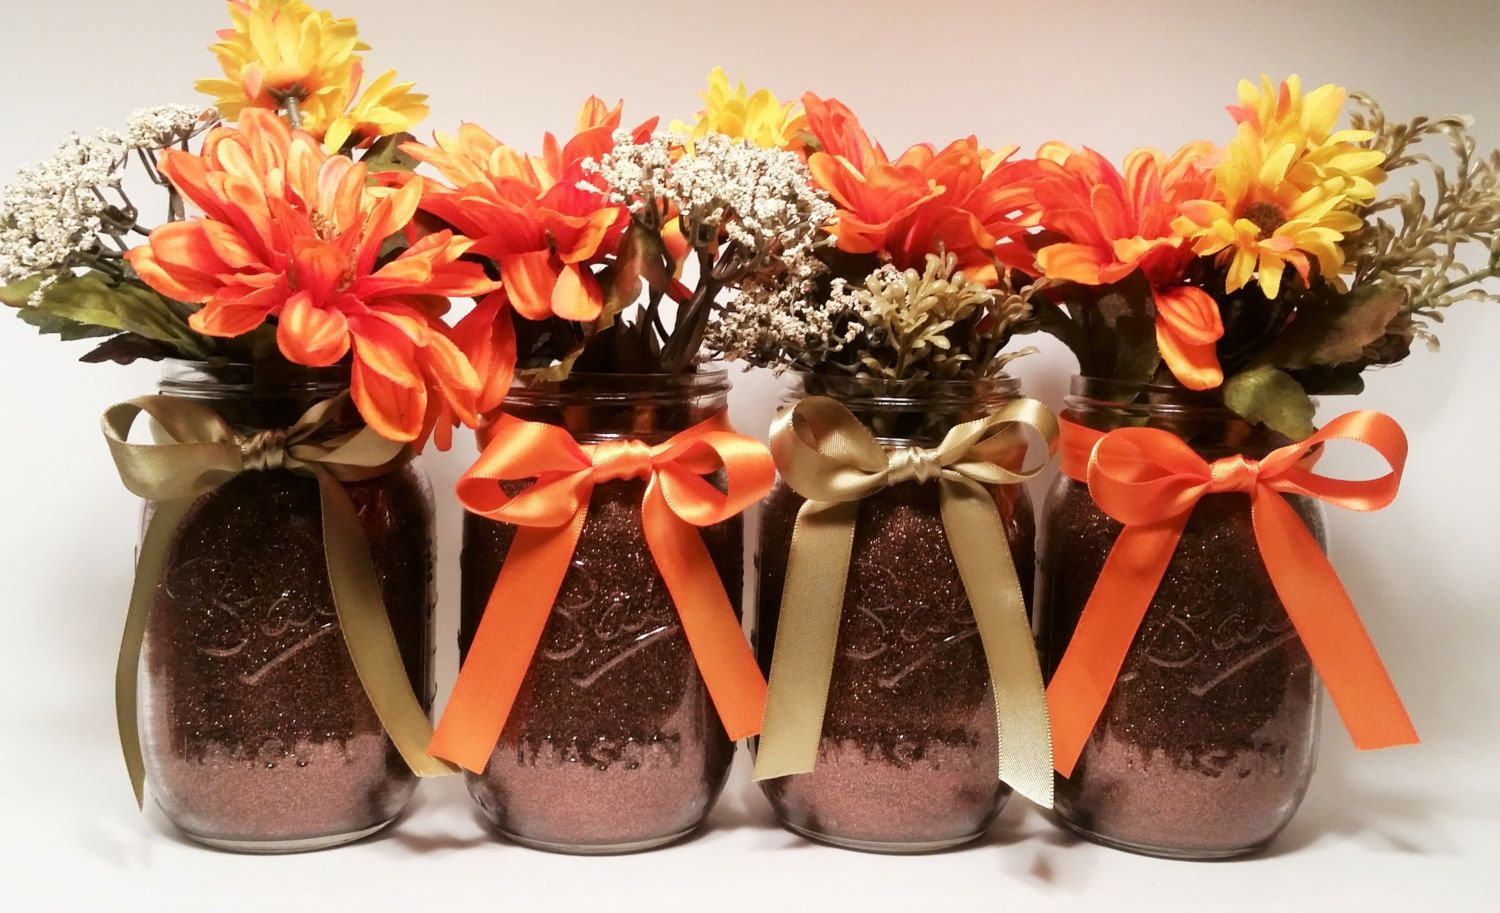 Lovely fall wedding decoration from mason jars that you can create on your own. don't forget to add your ribbons and seasonal fall flowers